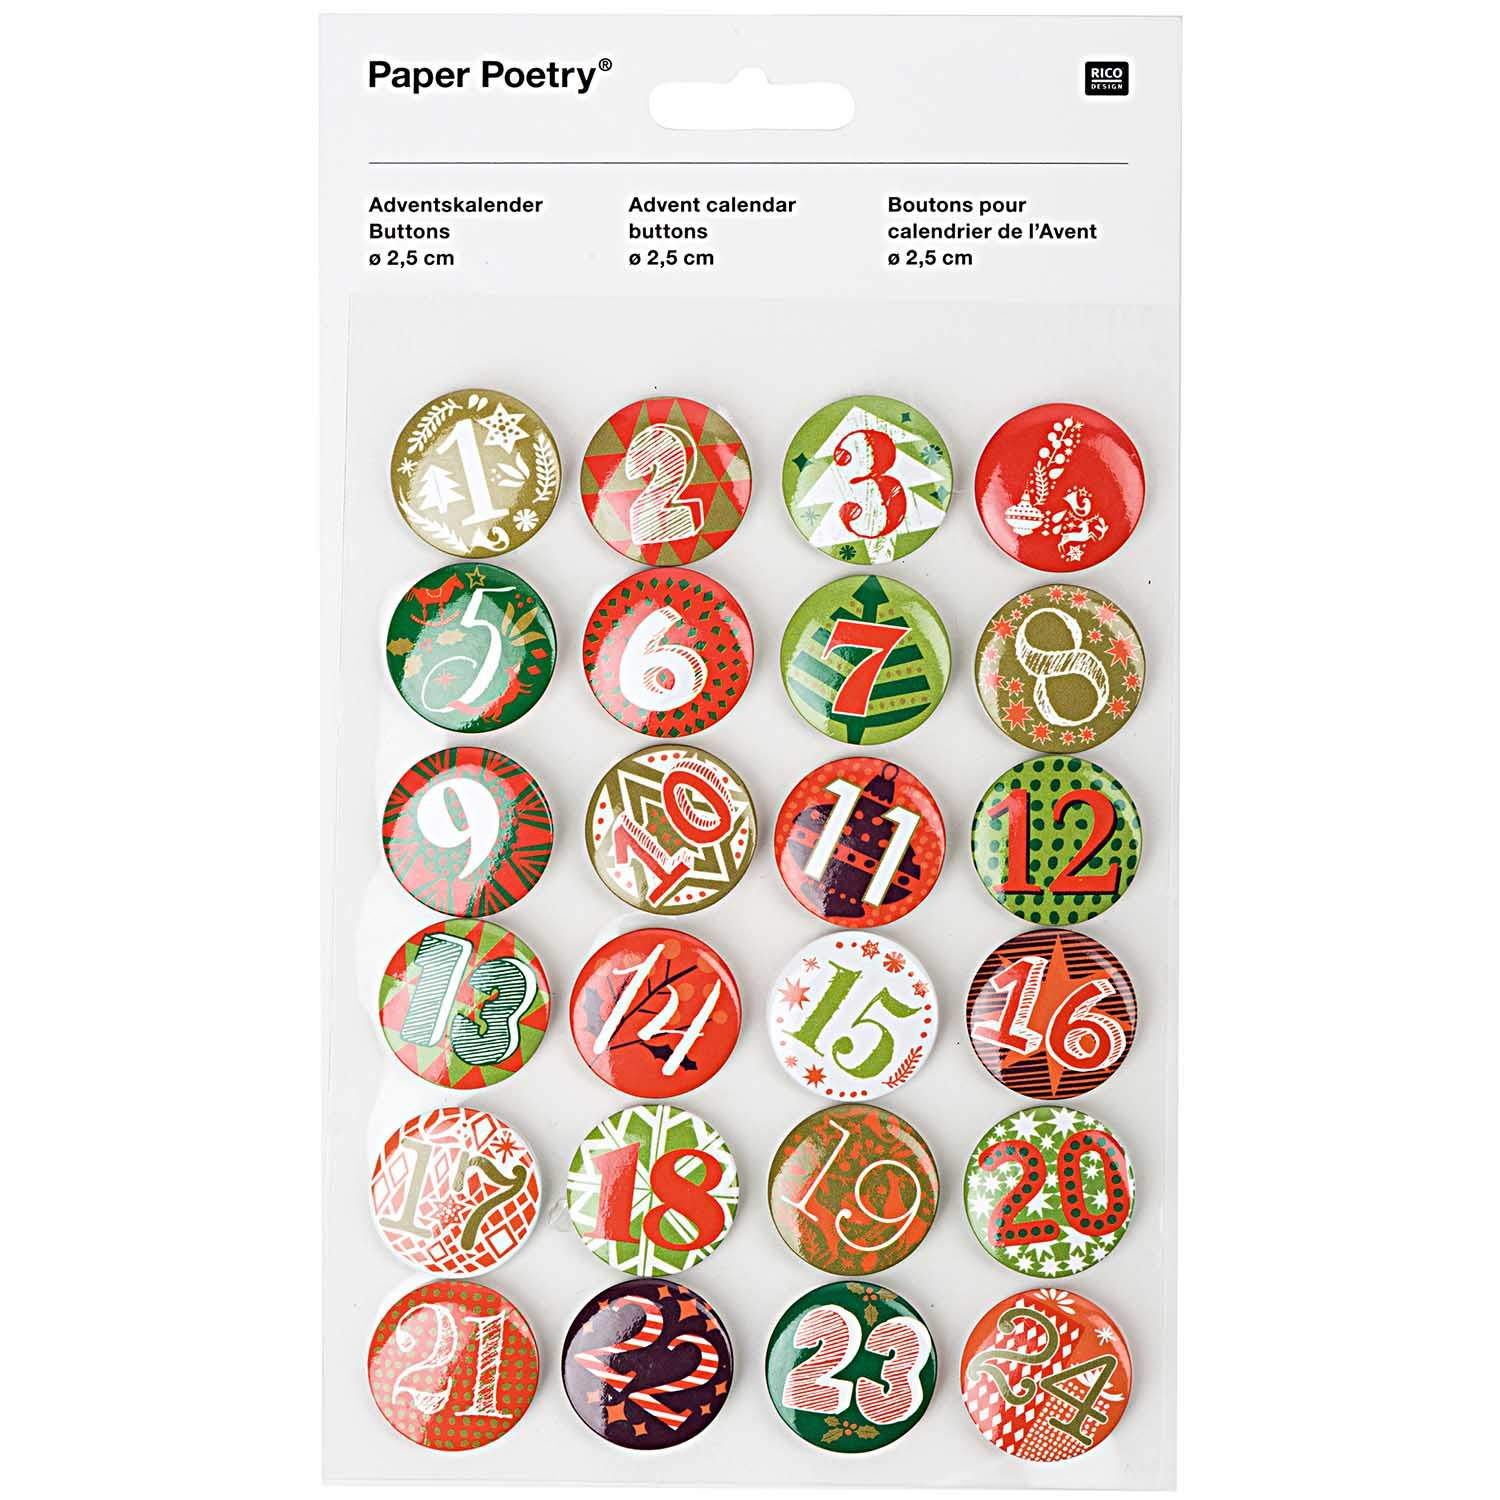 Adventskalender Zahlen Buttons Paper Poetry Adventskalender Zahlen Buttons Grün Rot 2 5cm 24 Stück